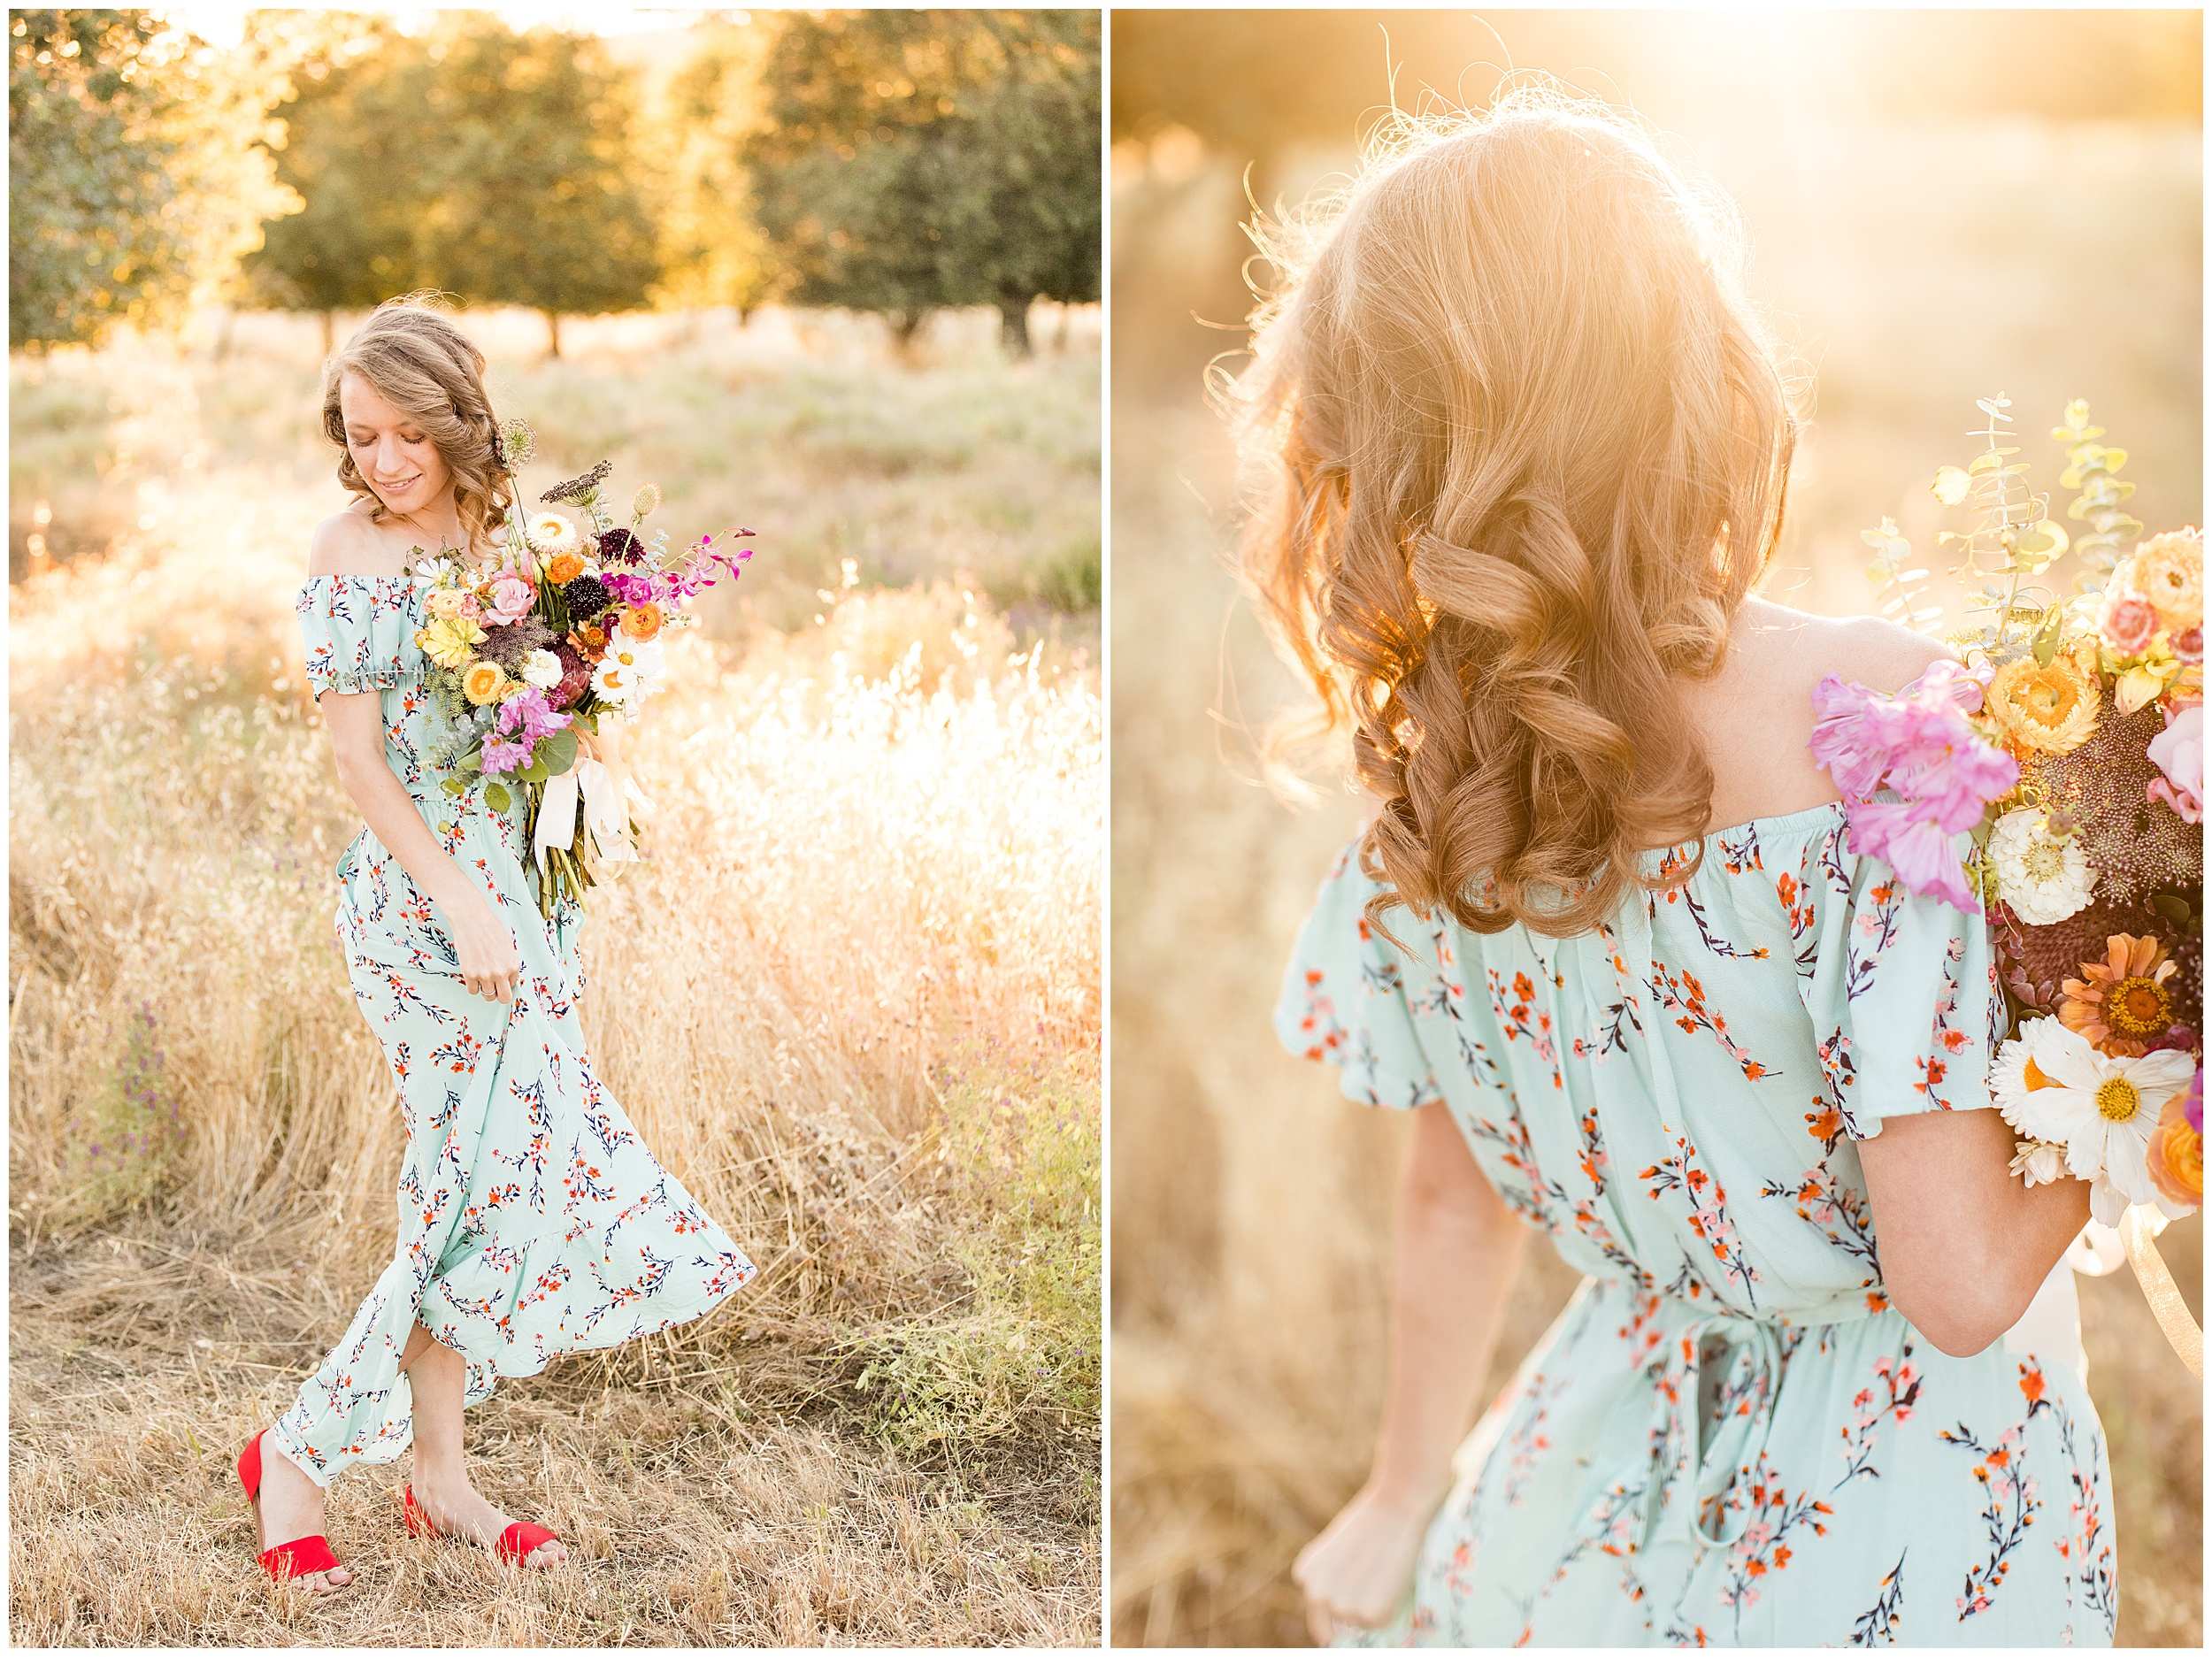 2019 bay area wedding photographer colorful florals flowers styled engagement session Angela Sue Photography_0016.jpg